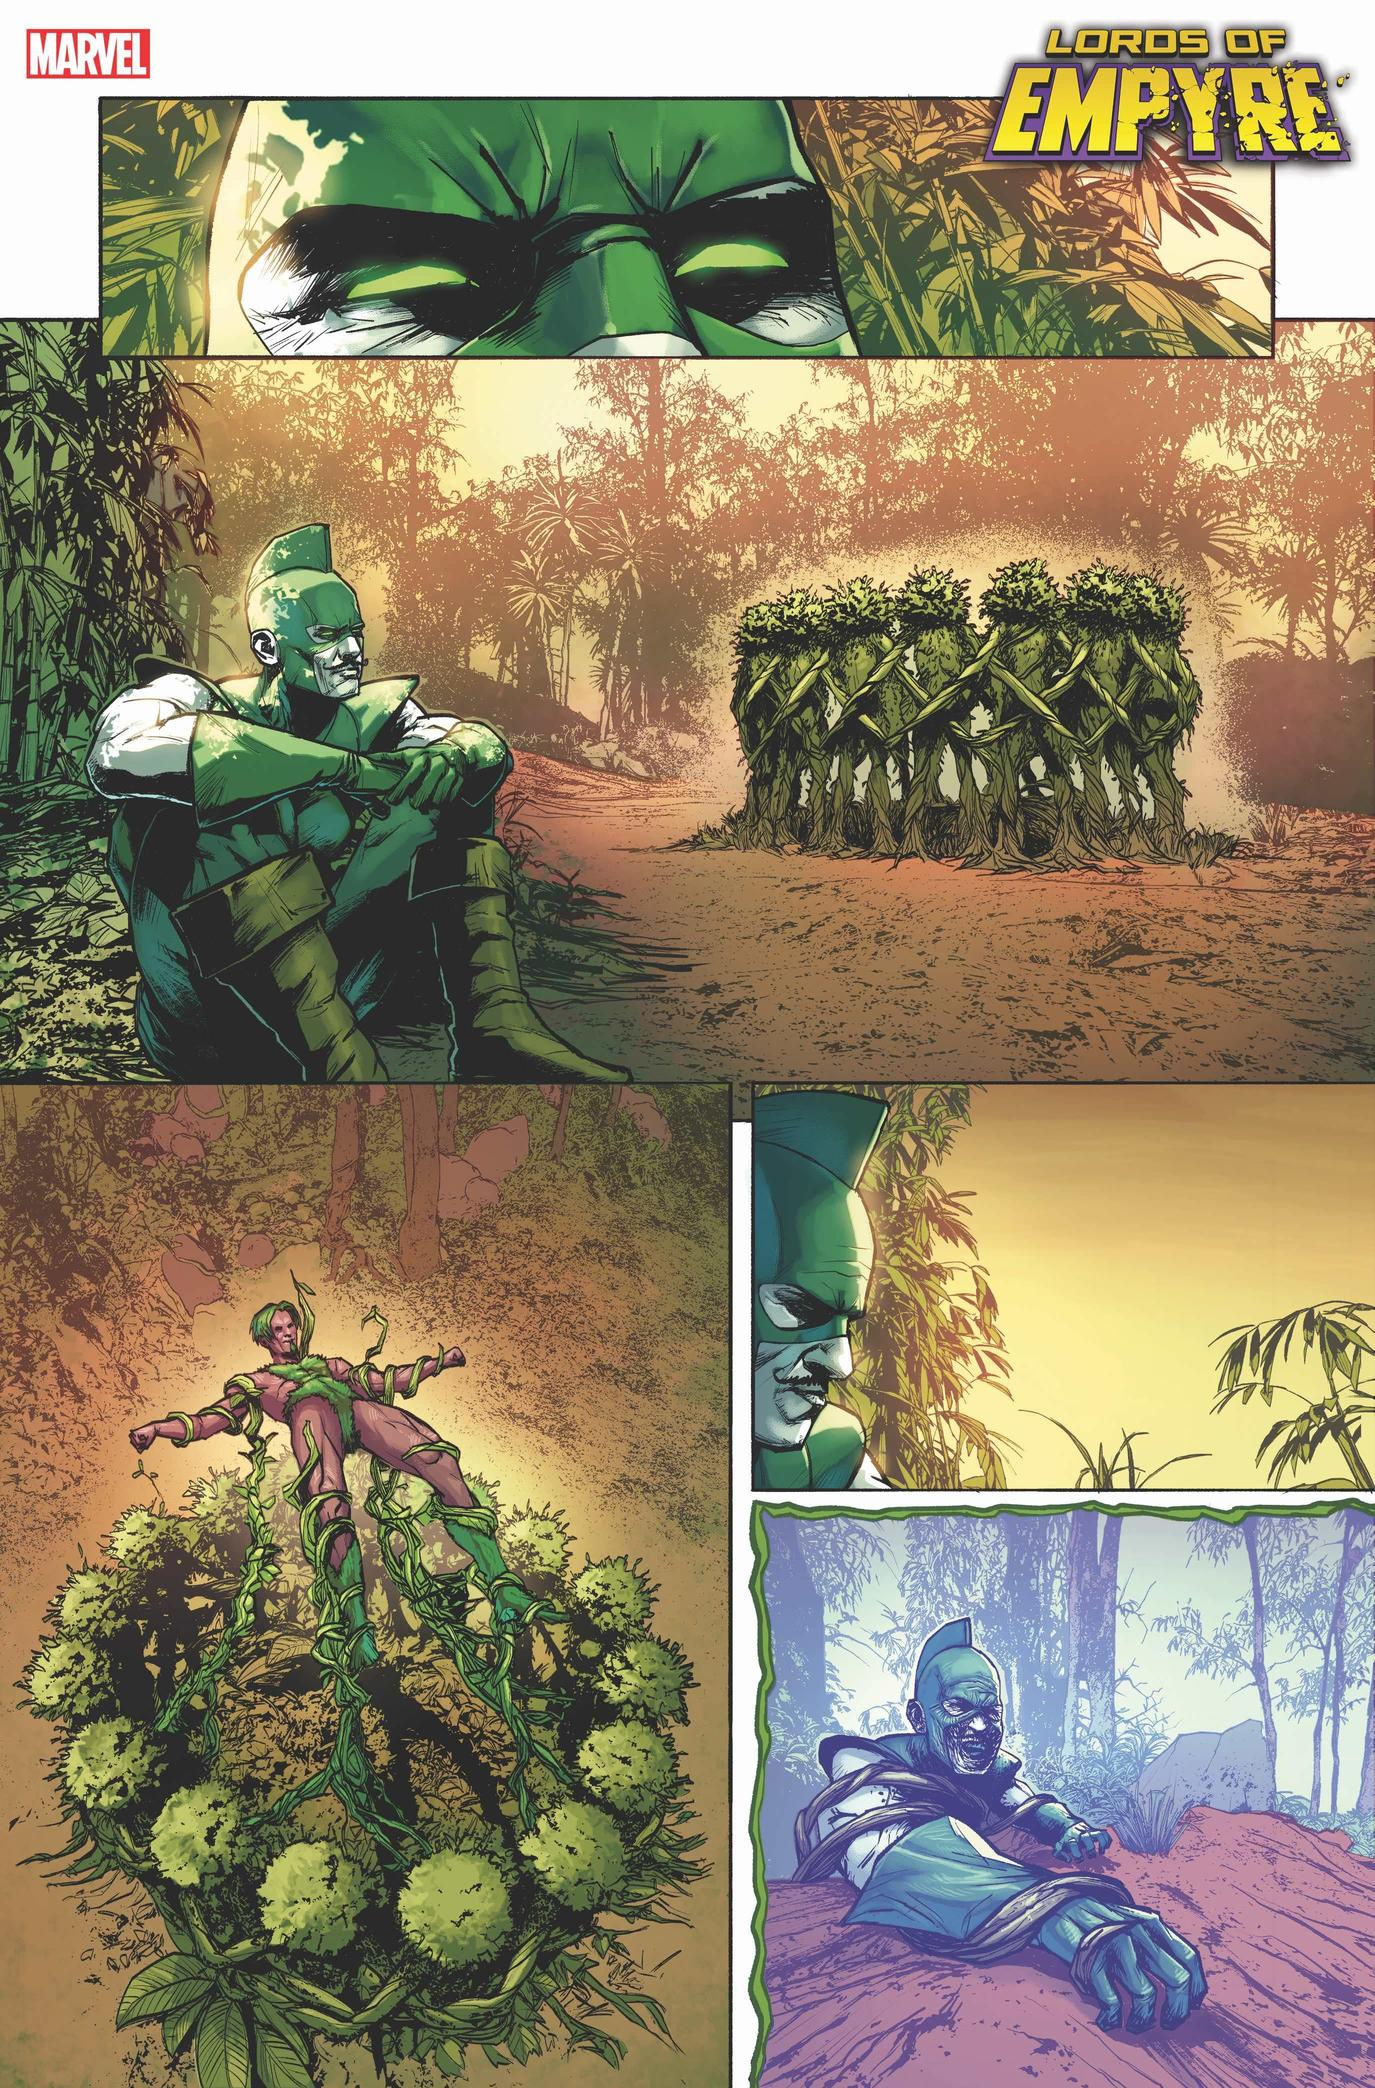 LORDS OF EMPYRE: SWORDSMAN #1 preview interiors by Thomas Nachlik with colors by Marcio Menyz